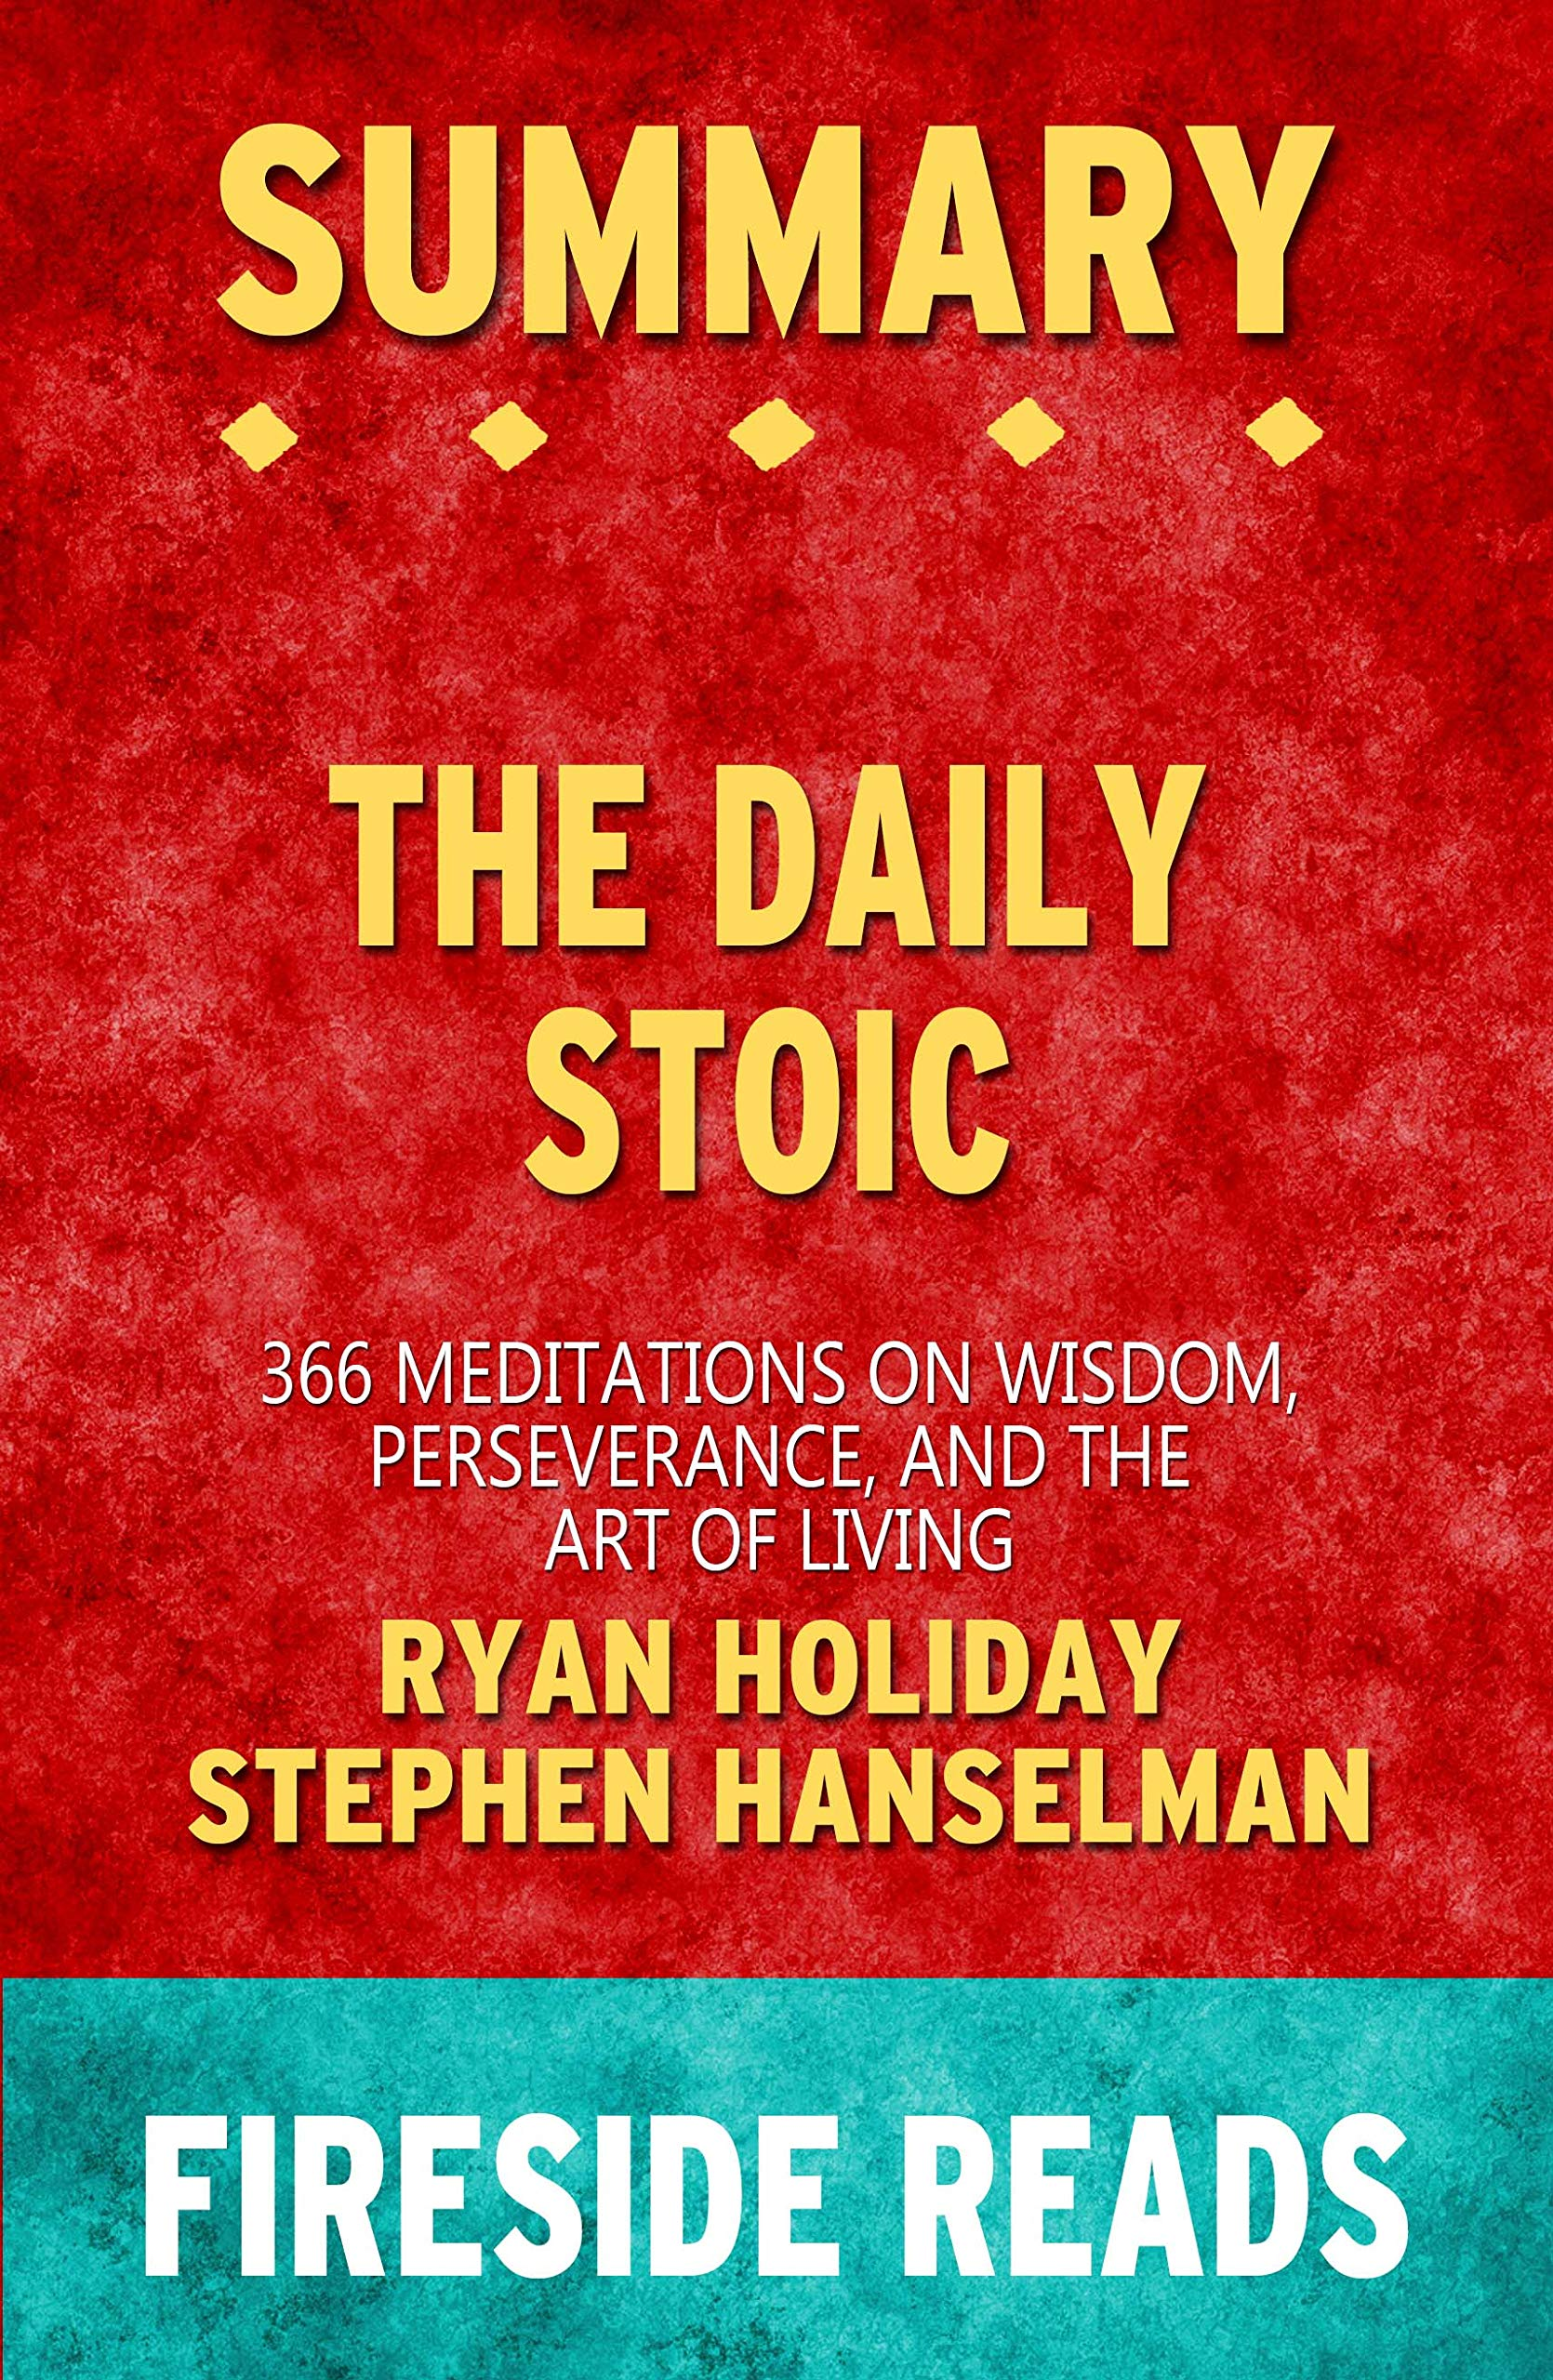 Summary of The Daily Stoic: 366 Meditations on Wisdom, Perseverance, and the Art of Living: by Fireside Reads